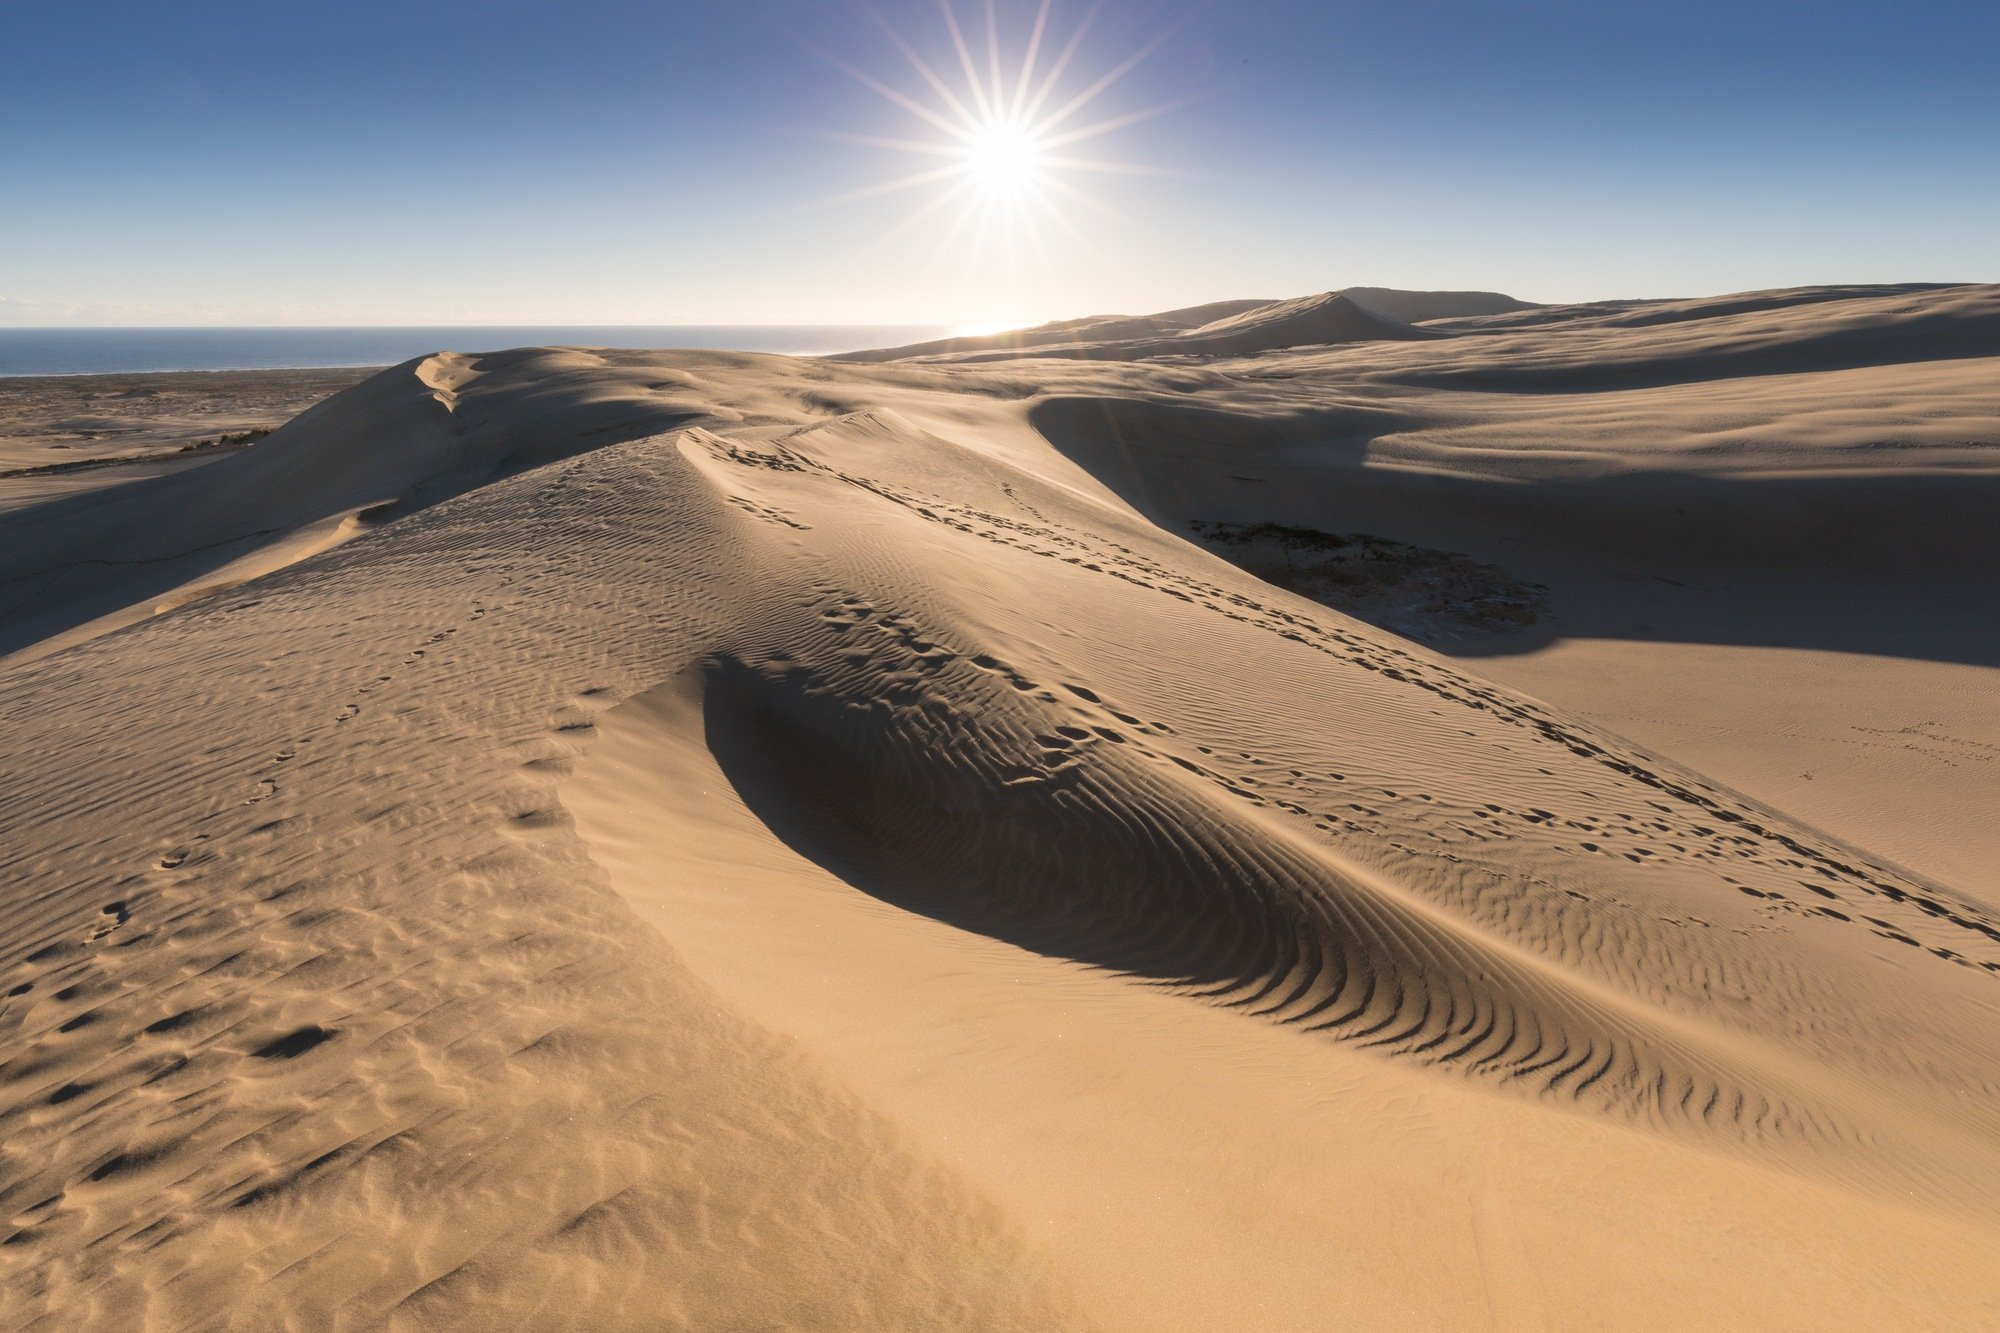 Mesquite Flat Dunes in Death Valley National Park